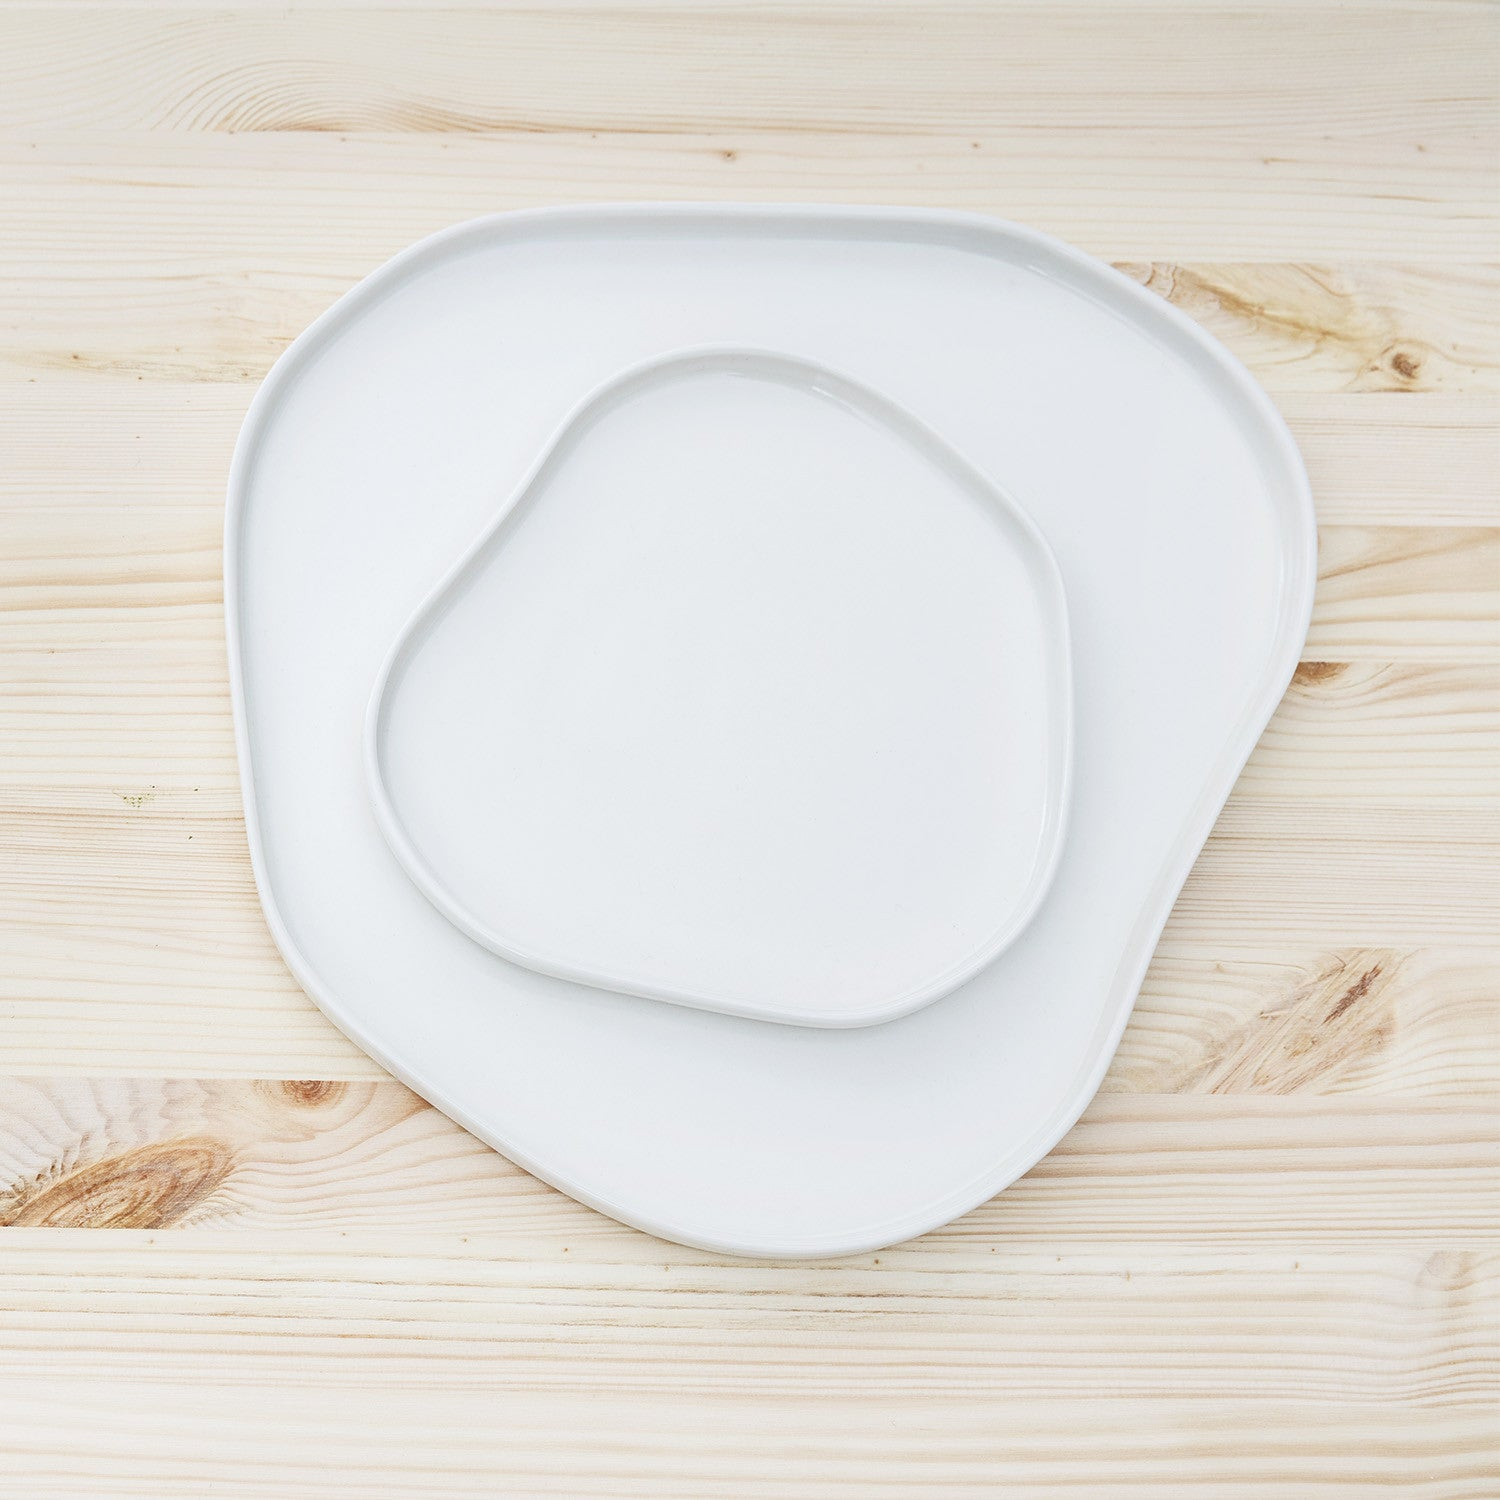 HALKO plate, small